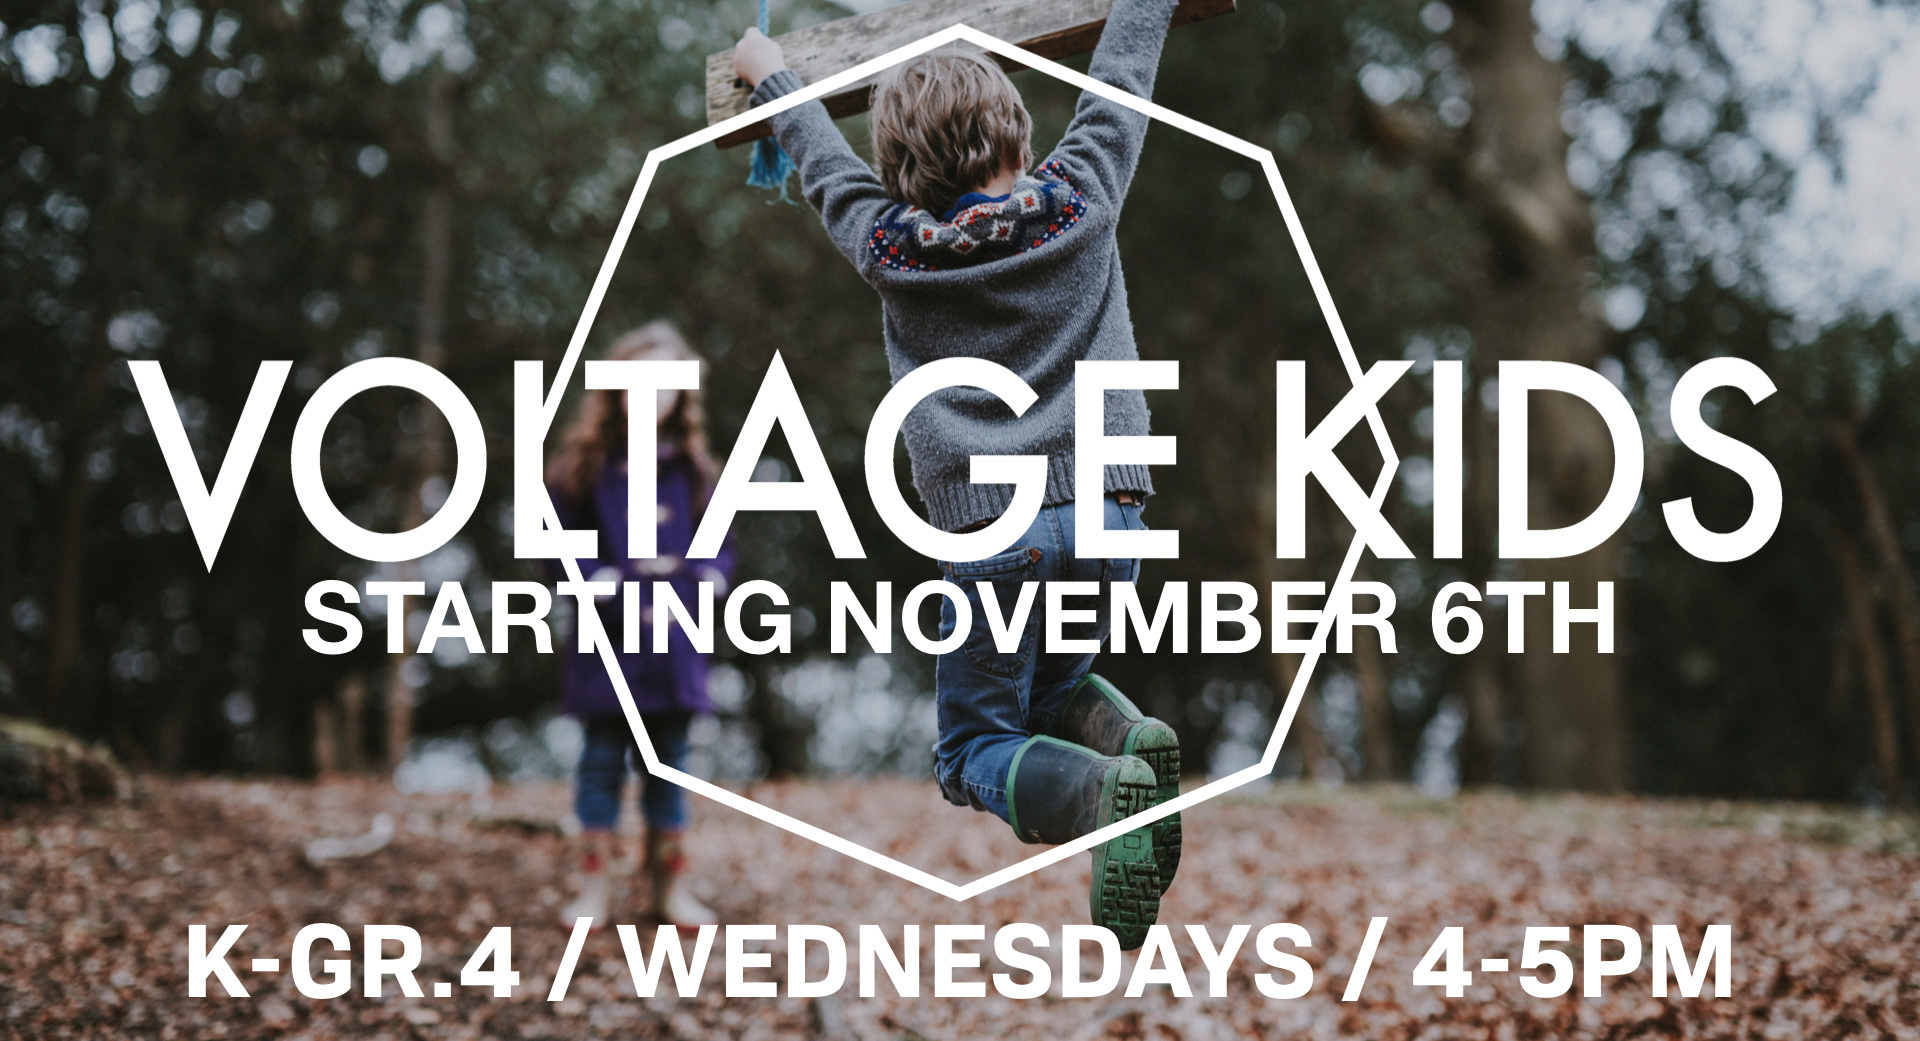 Voltage kids Wednesday